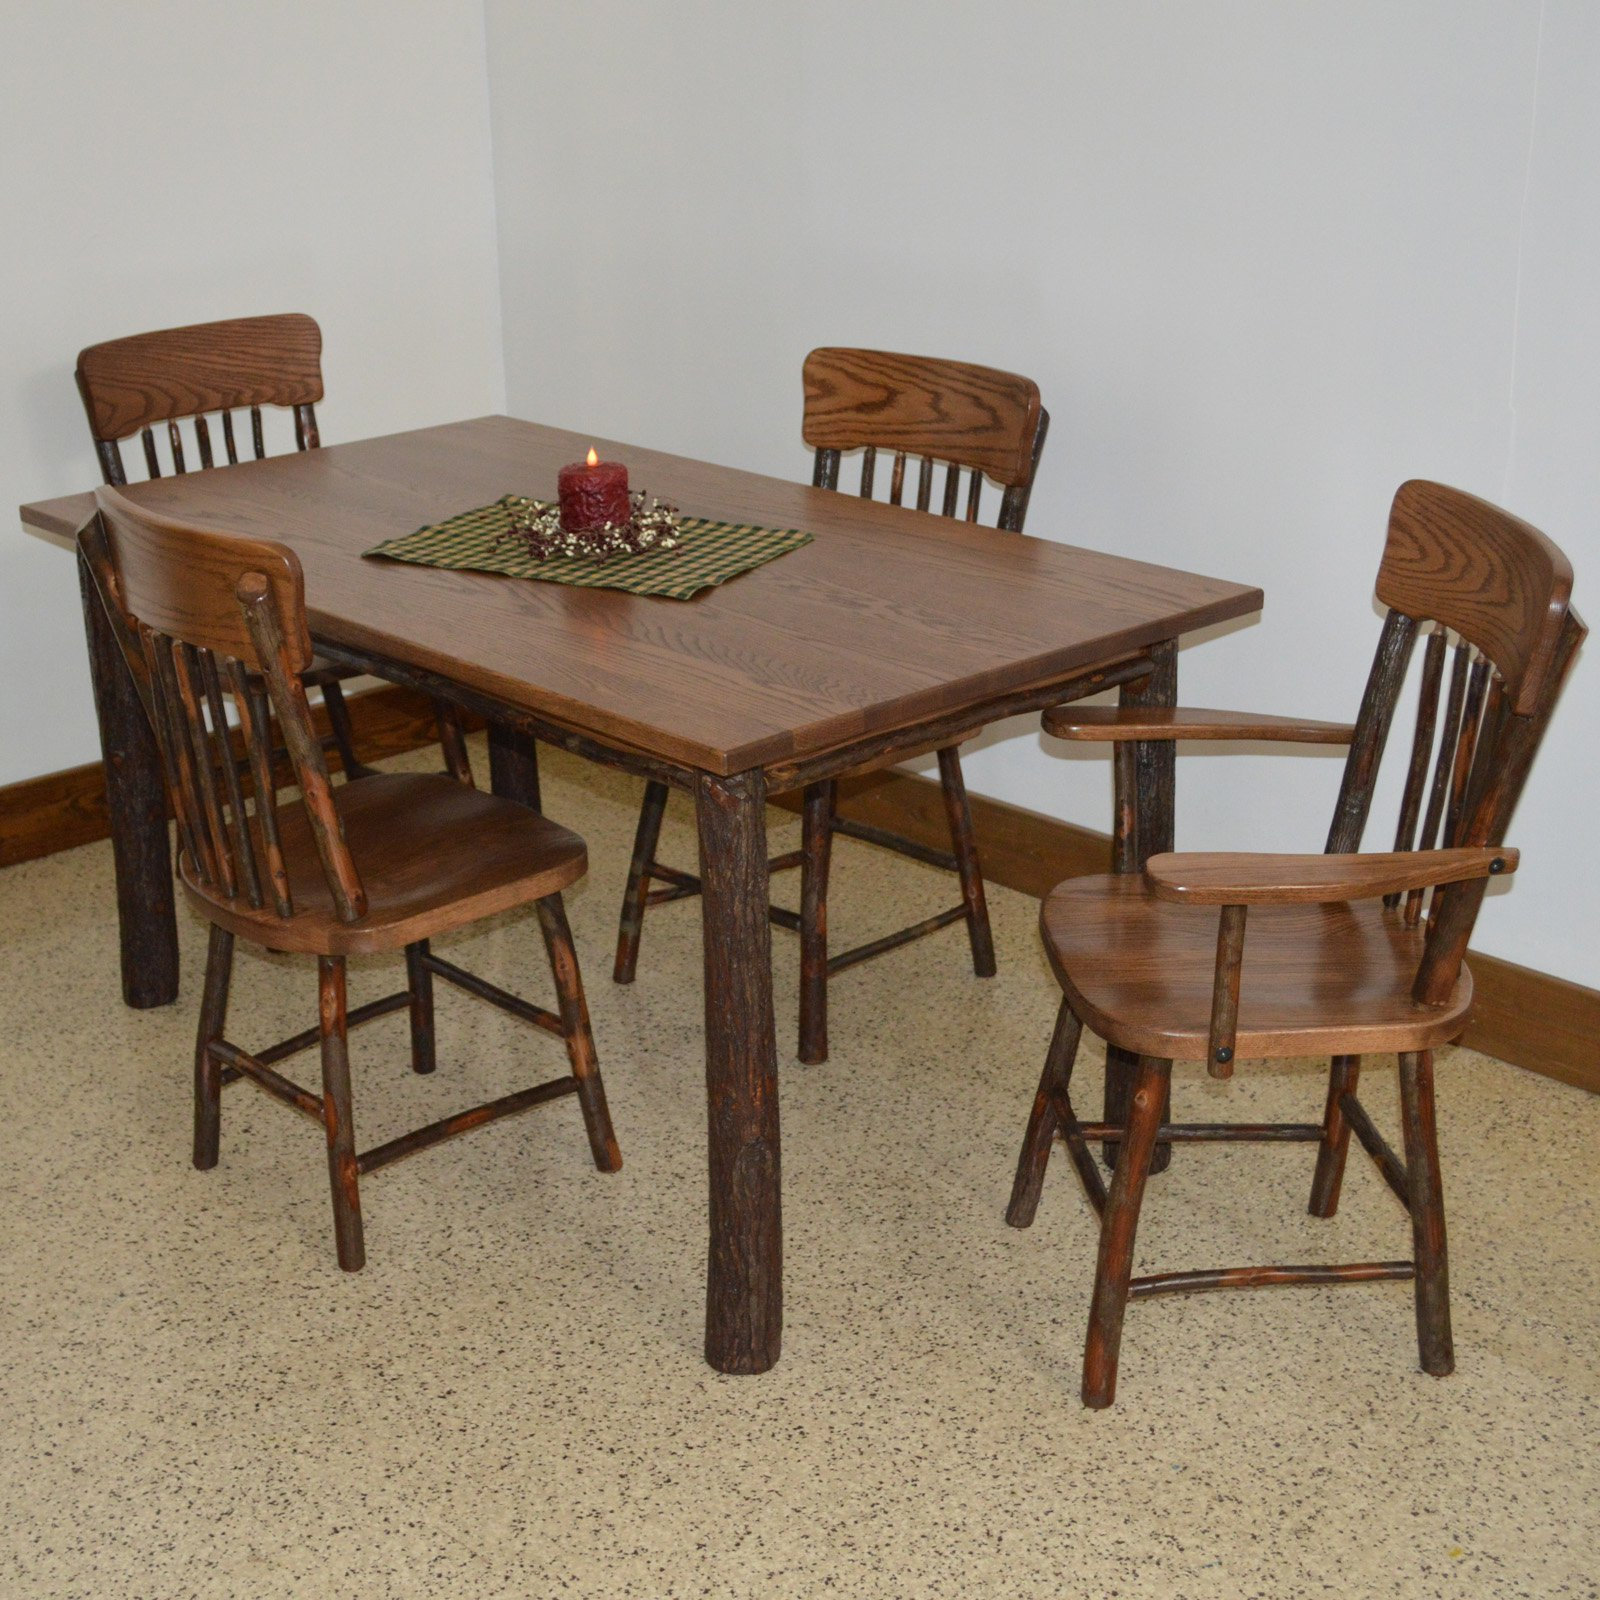 Outdoor A & L Furniture Hickory 5 Piece Patio Dining Set